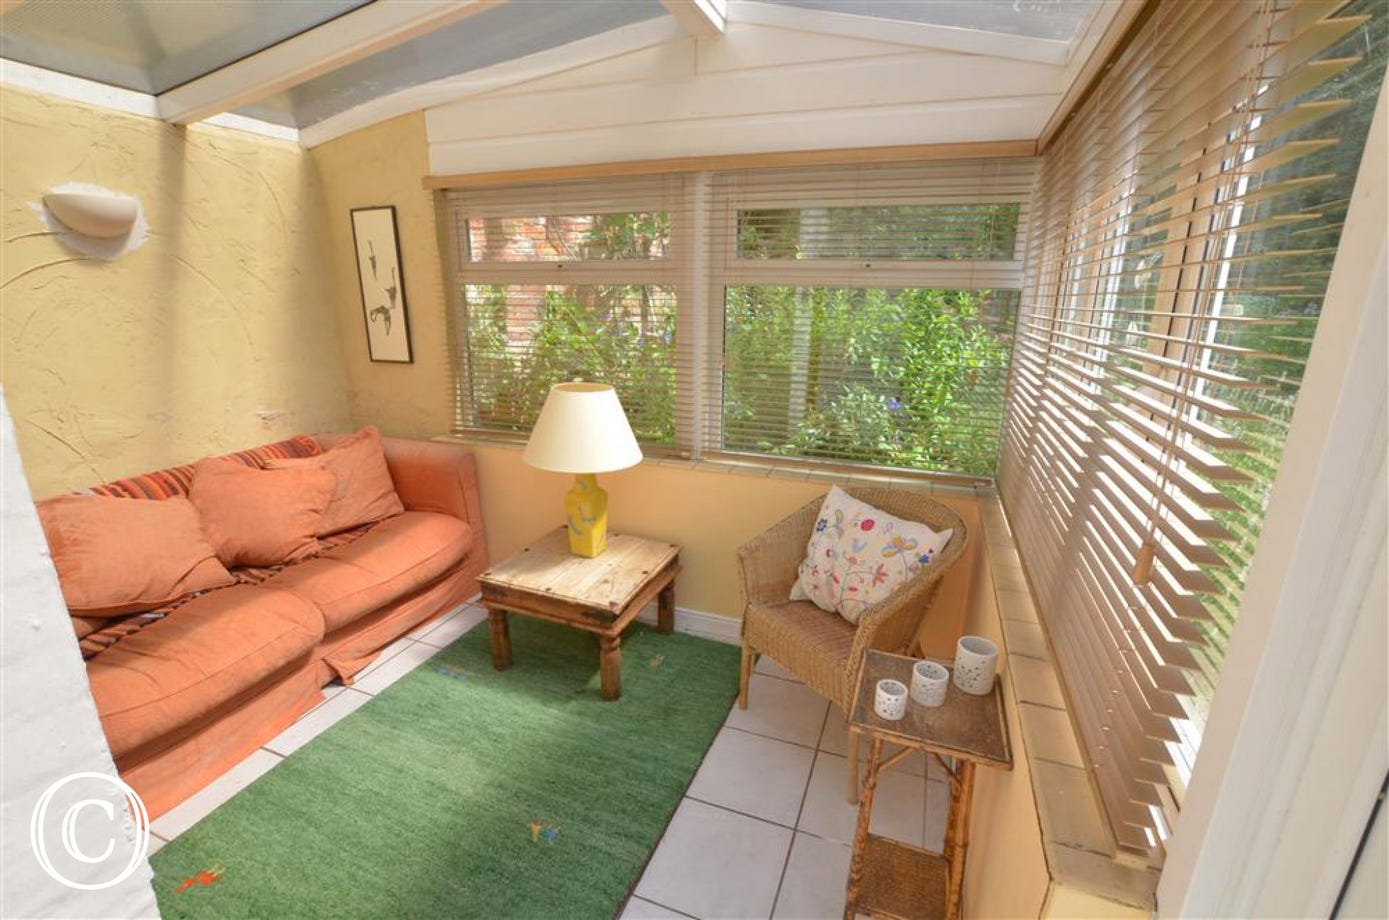 View of conservatory, venetian blinds at all windows, sofa, wicker chair and side tables.